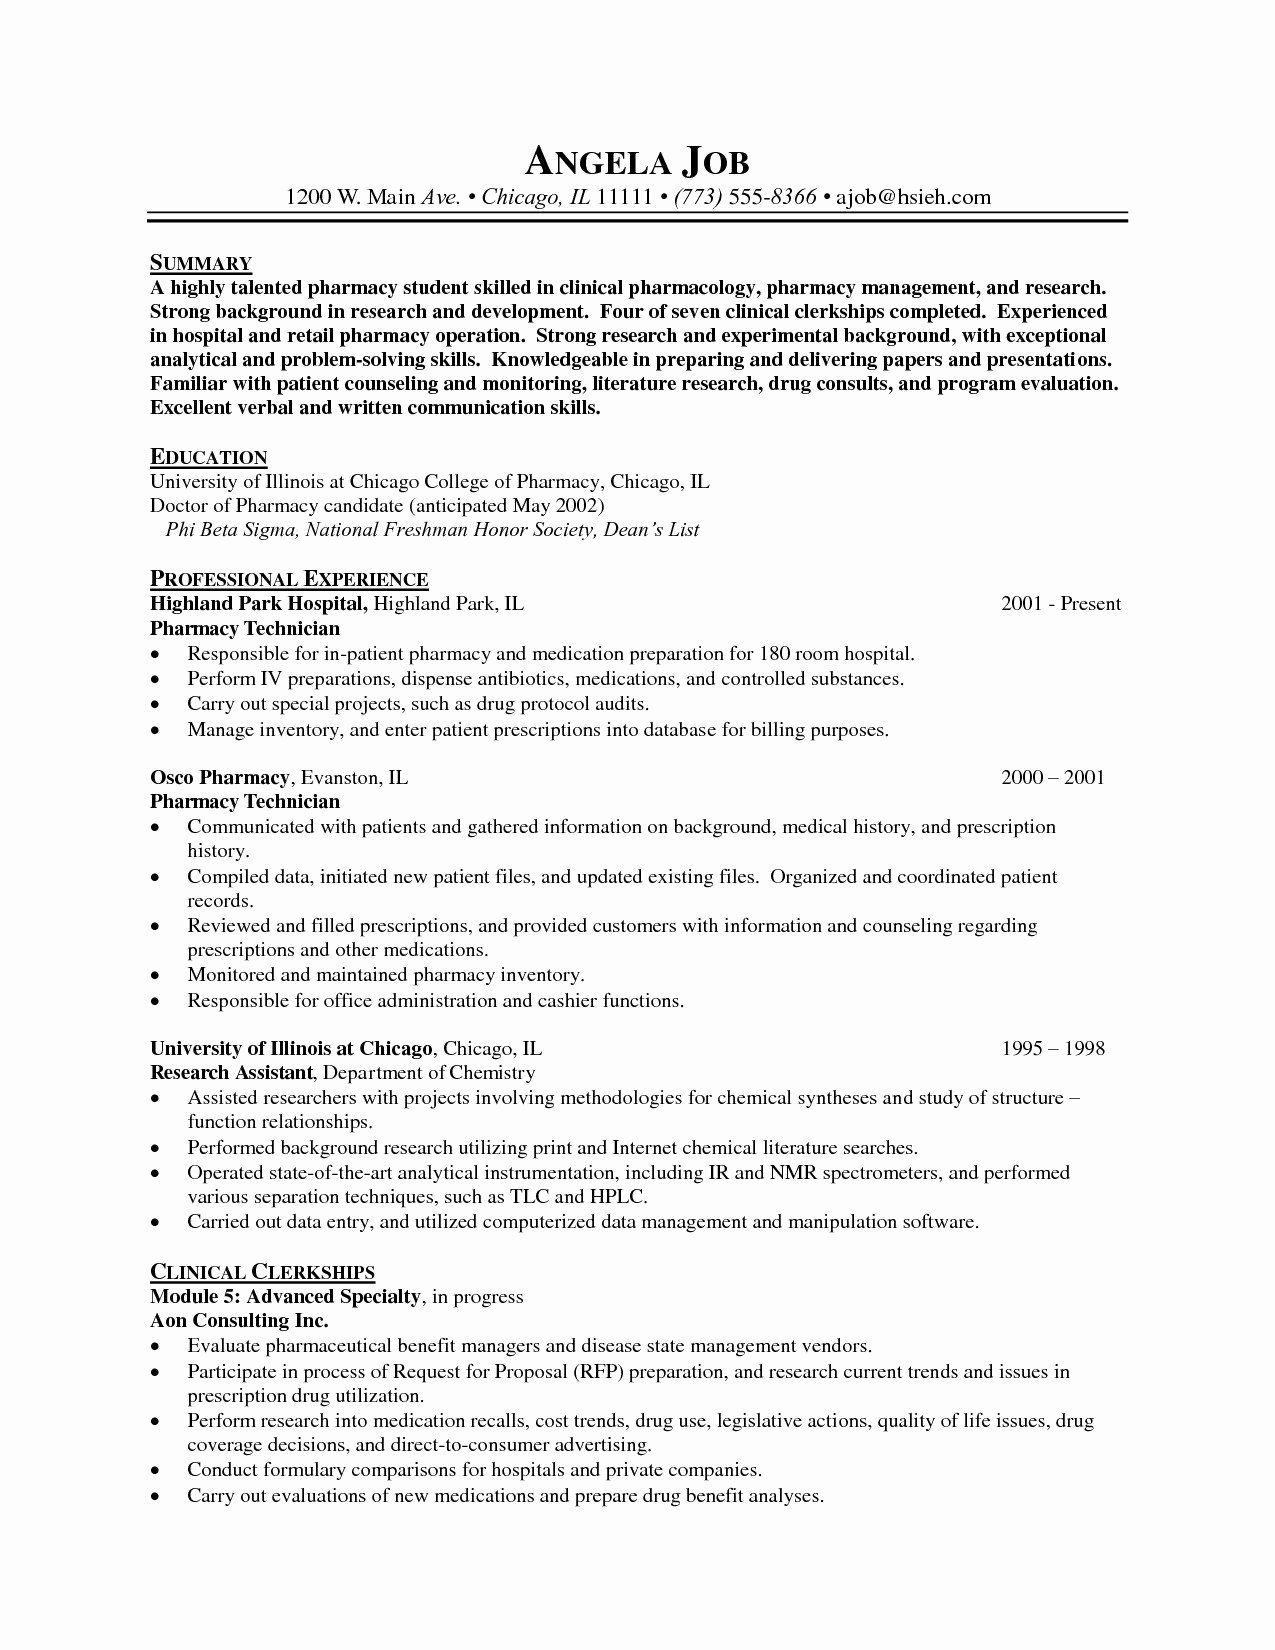 Spay and Neuter Contract Template Lovely Spay and Neuter Contract Template Paramythia Docs